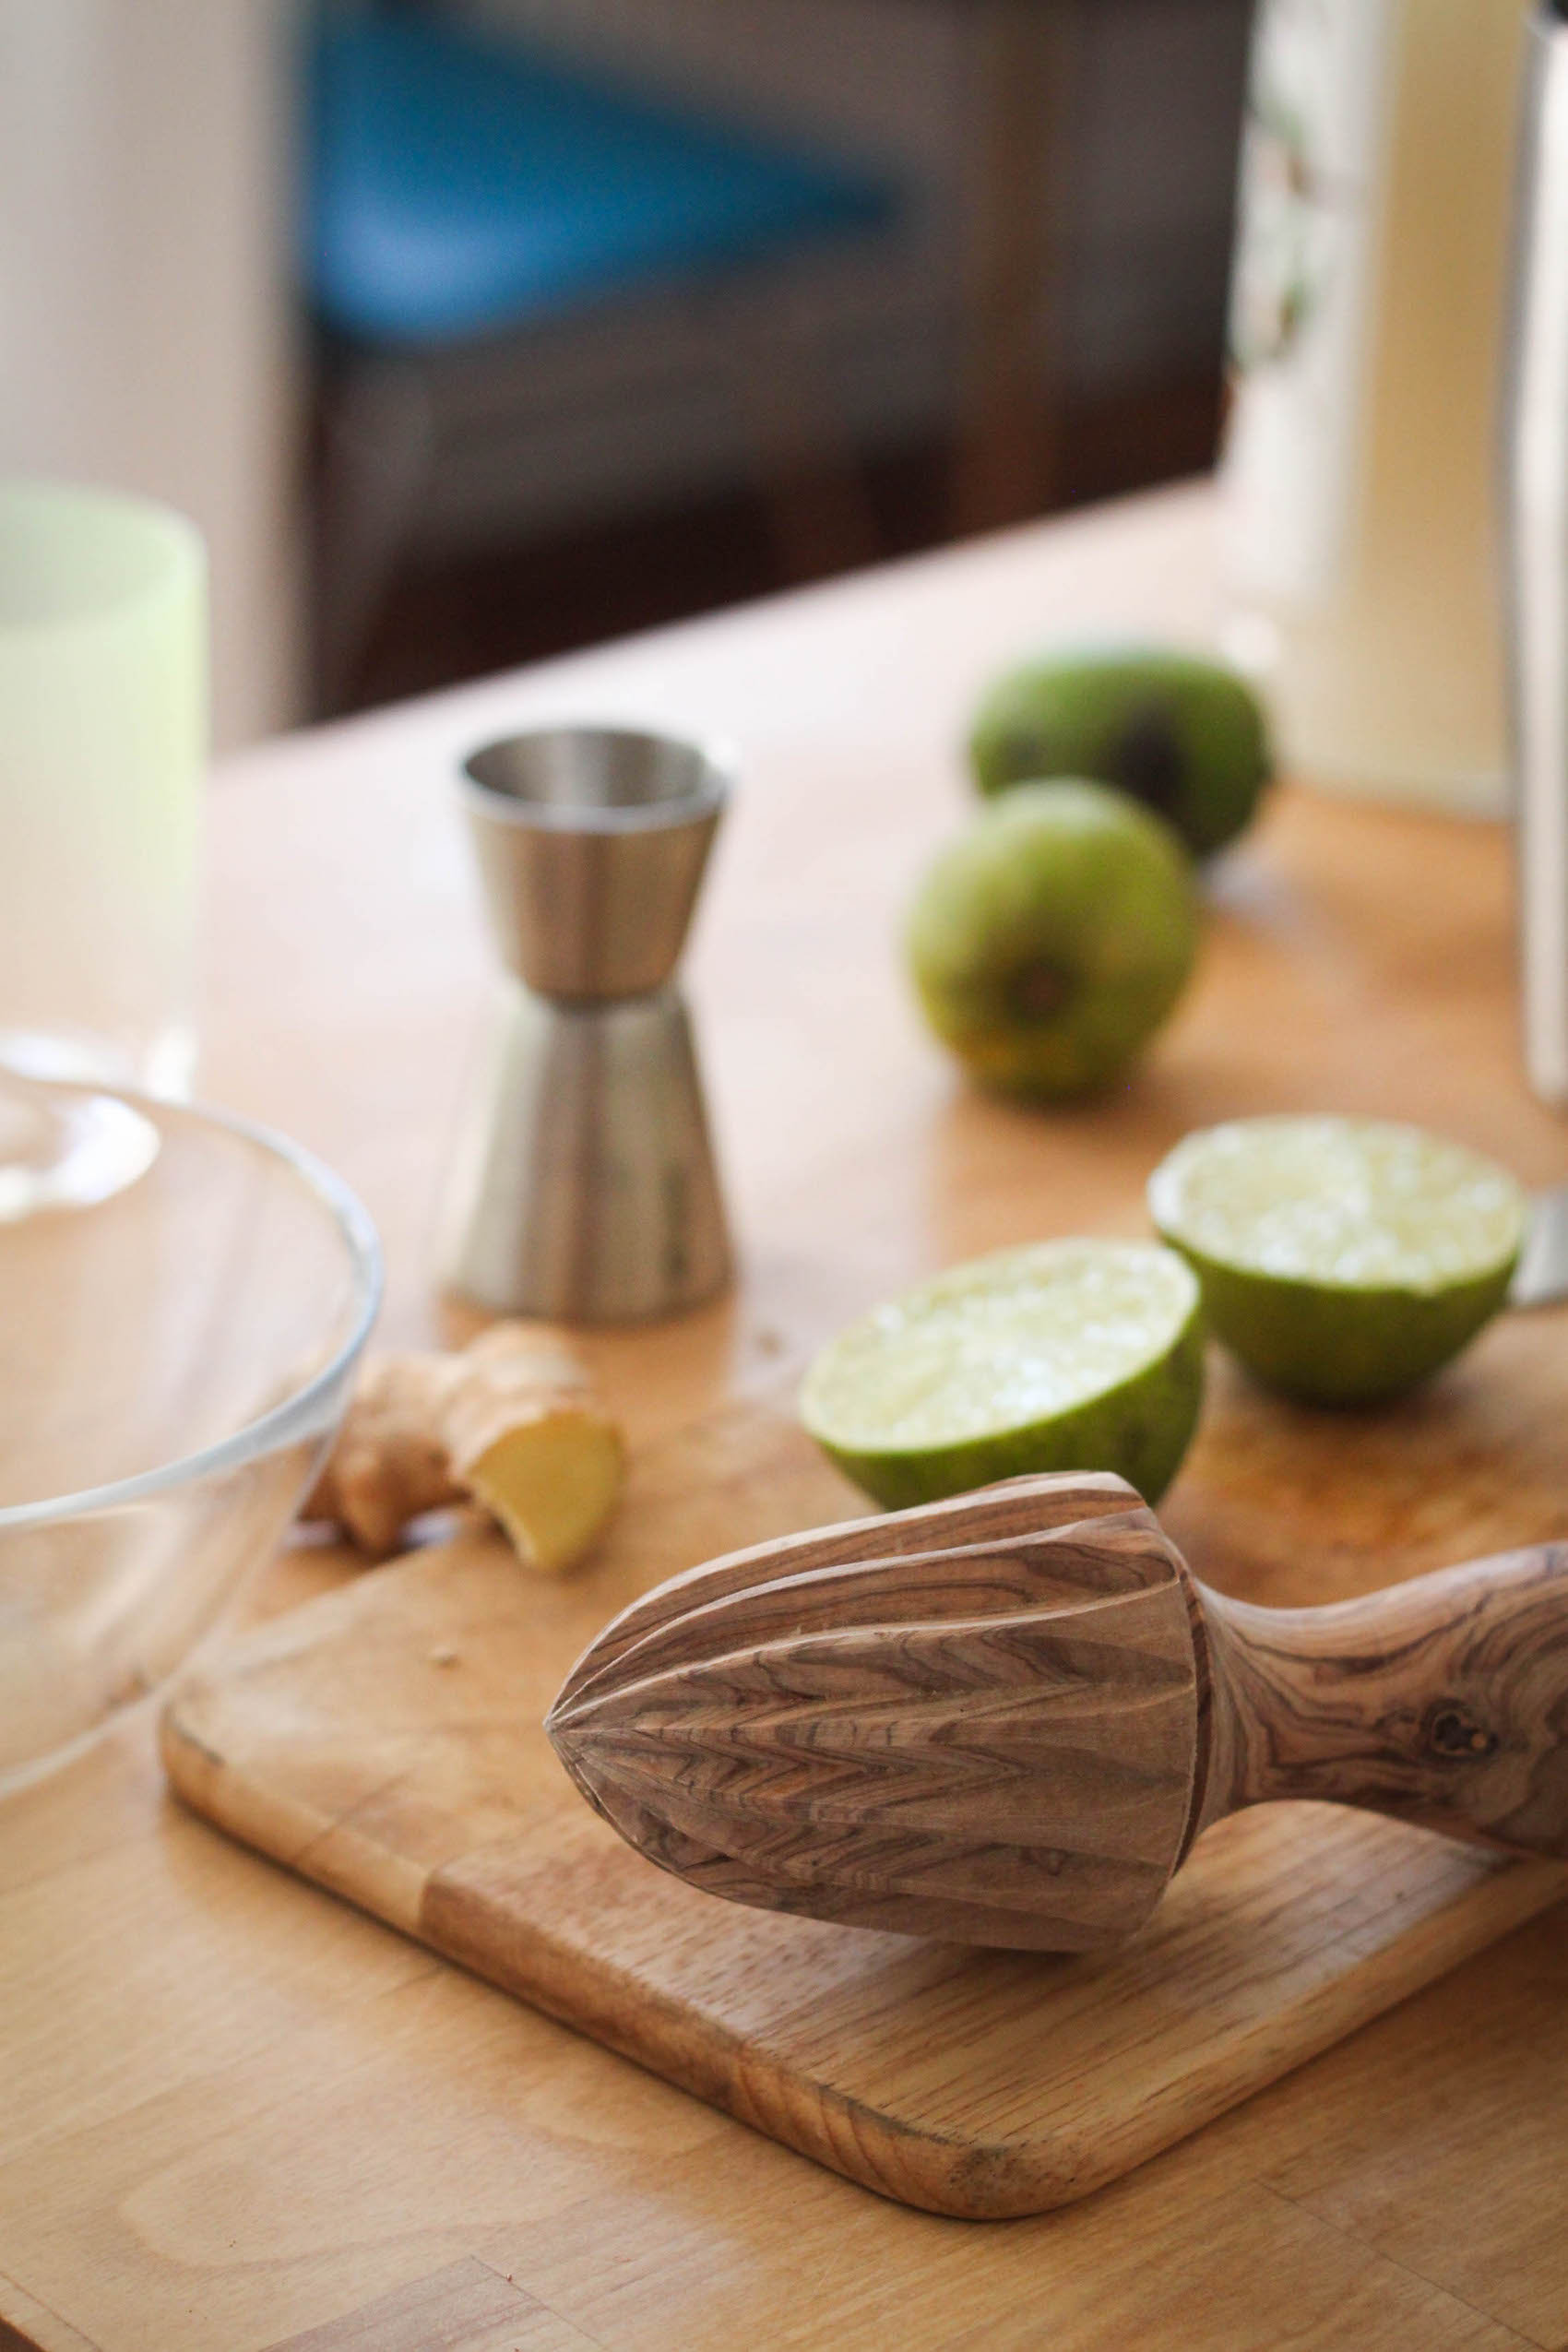 Juicing limes (Eat Me. Drink Me.)